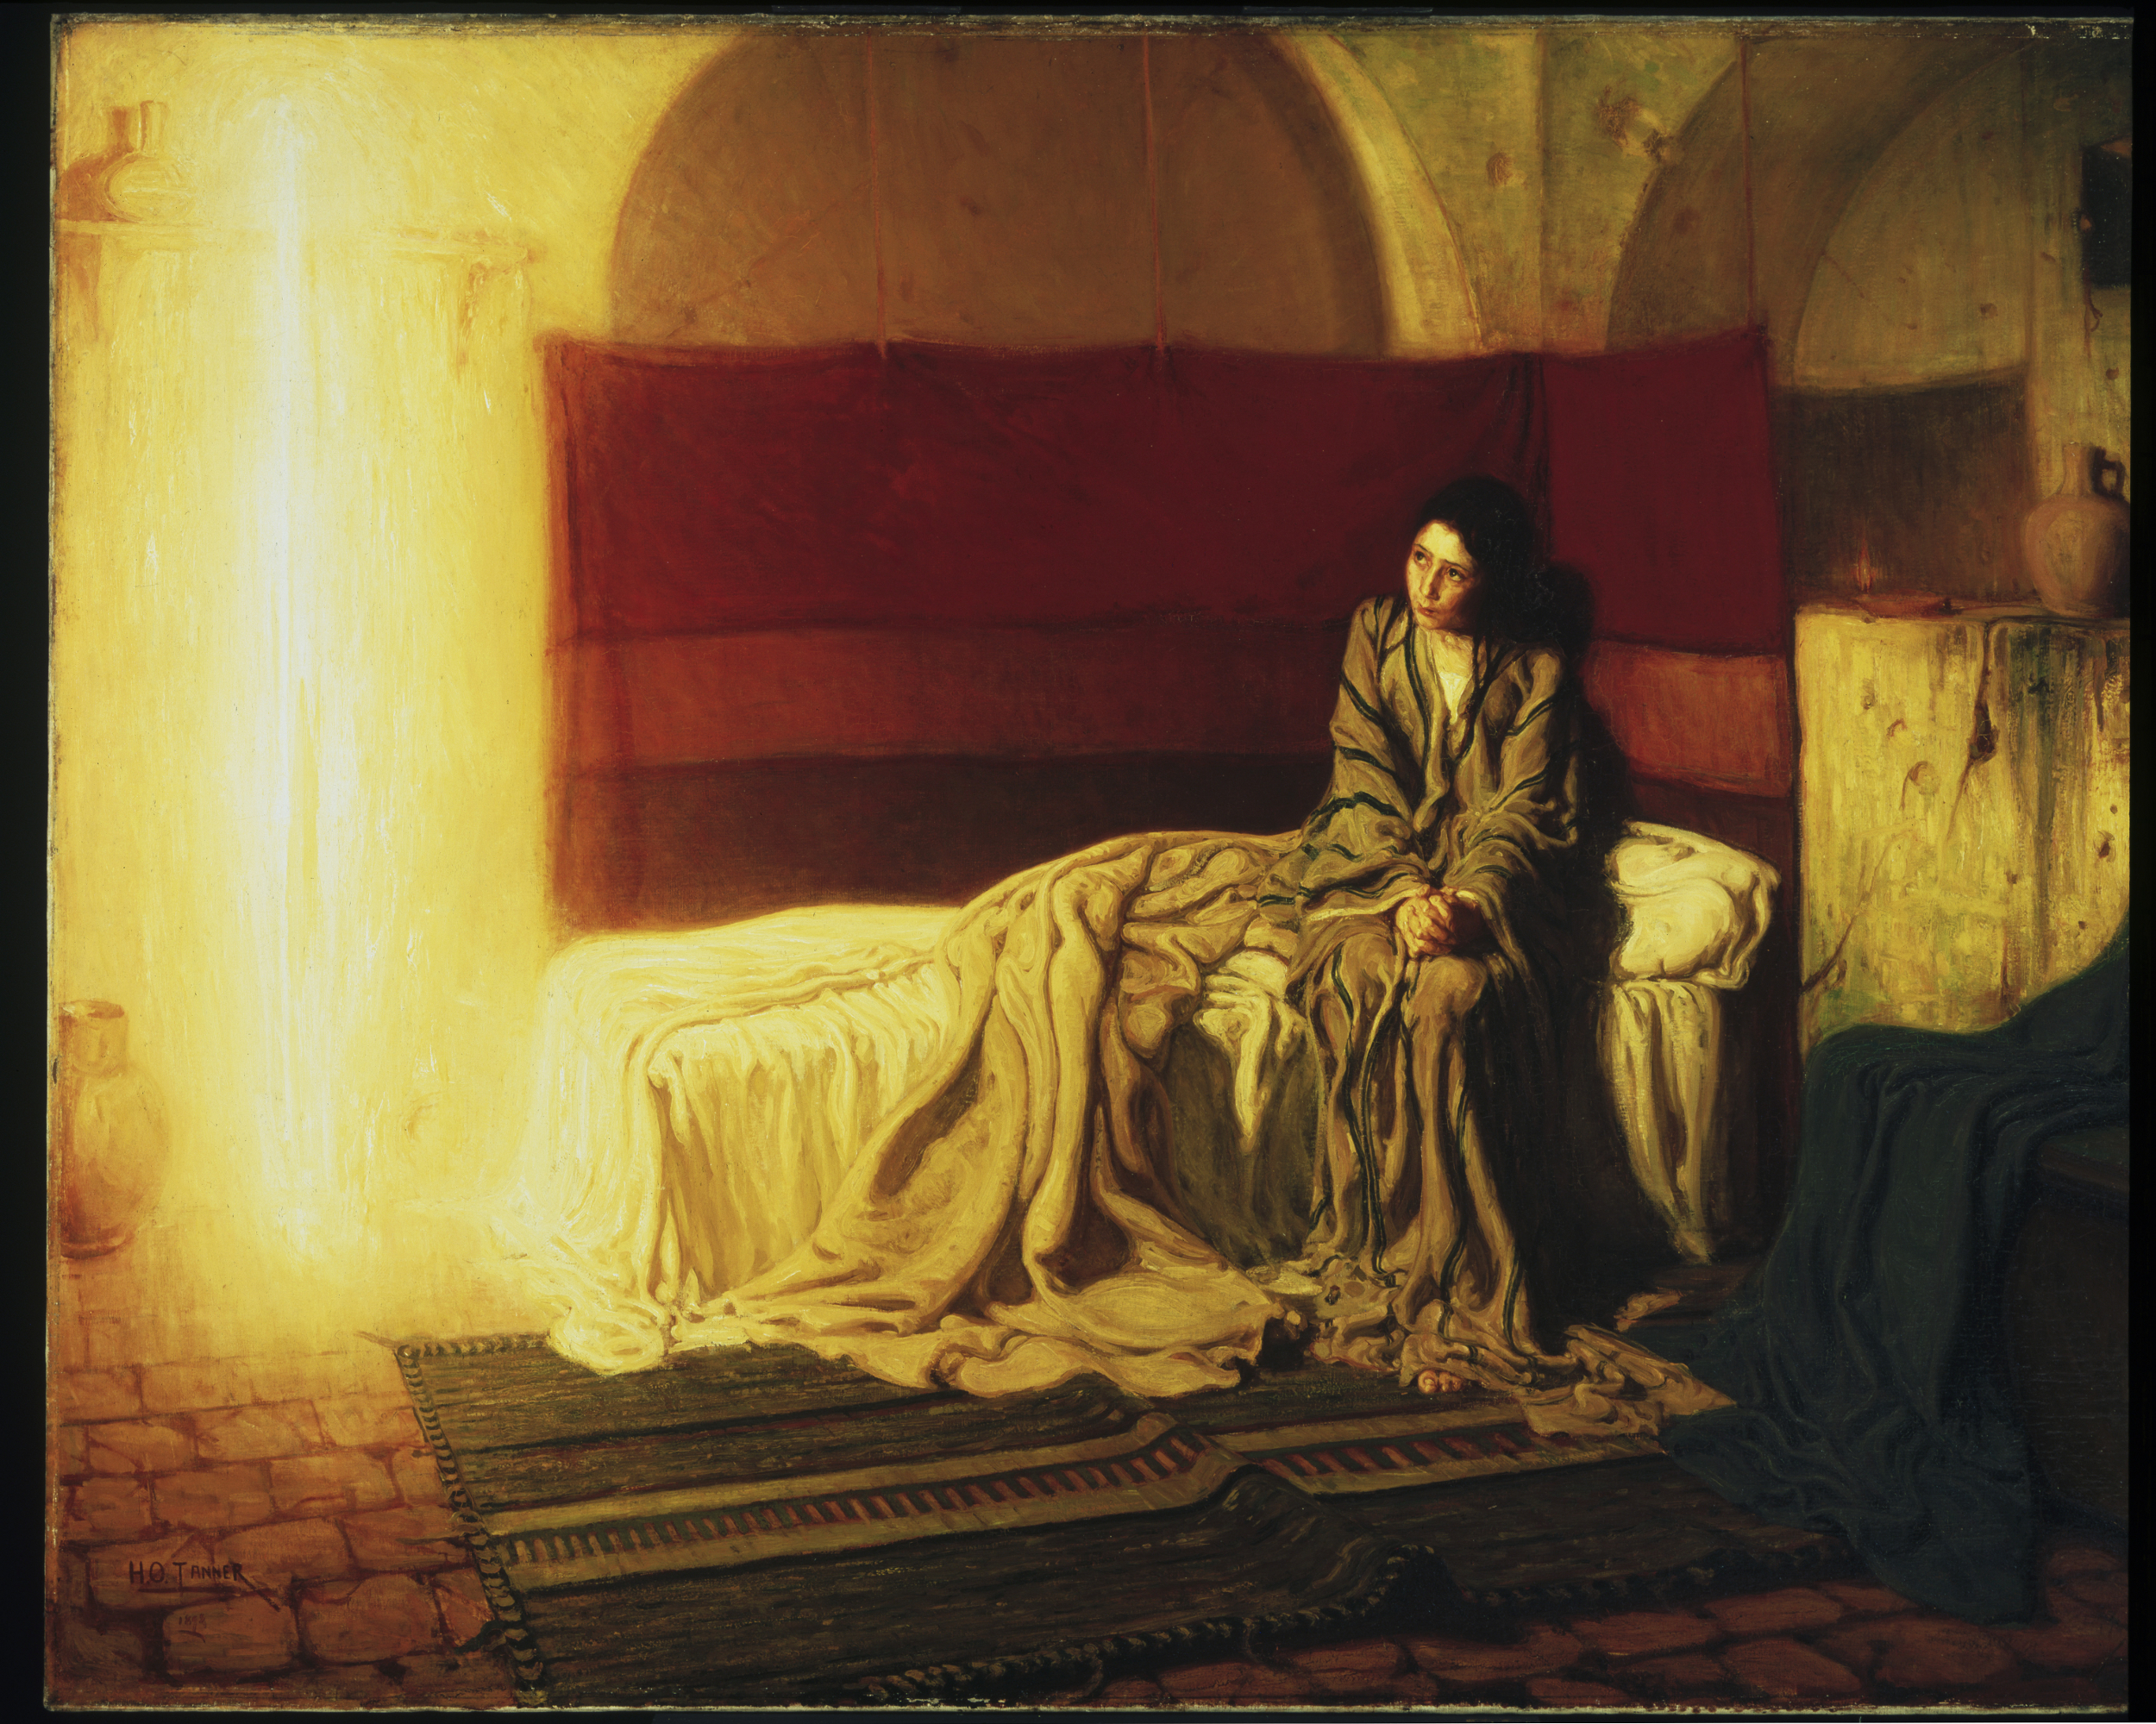 Fig. 3 Henry Ossawa Tanner, The Annunciation, 1898